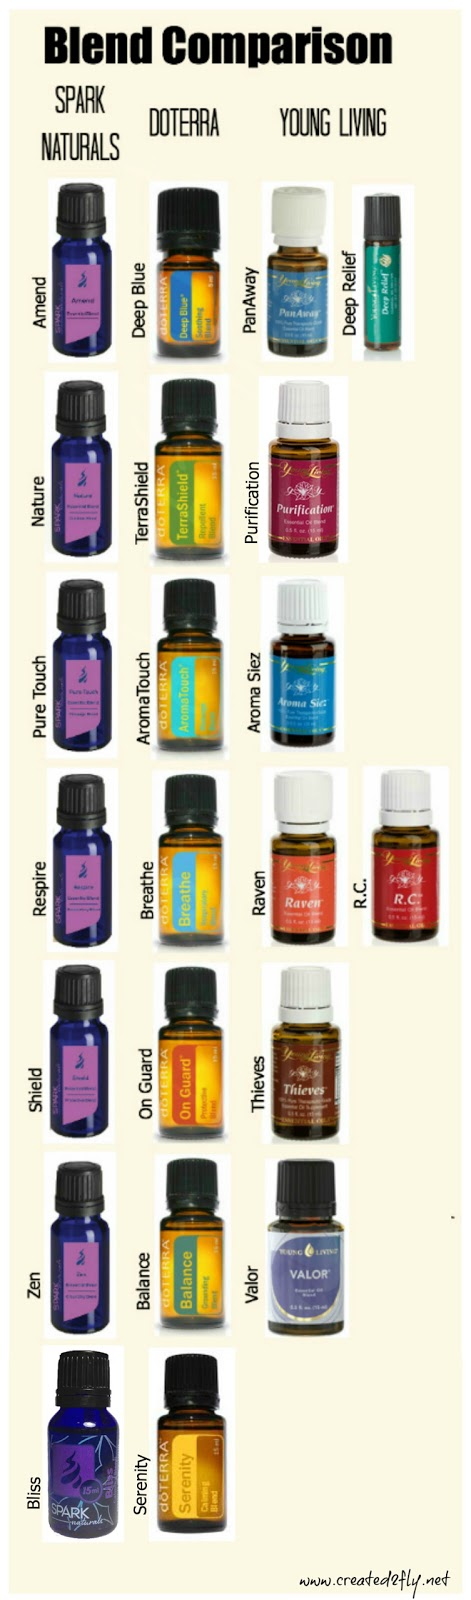 www.created2fly.net: Spark Naturals Essential Oil Blend Comparisons